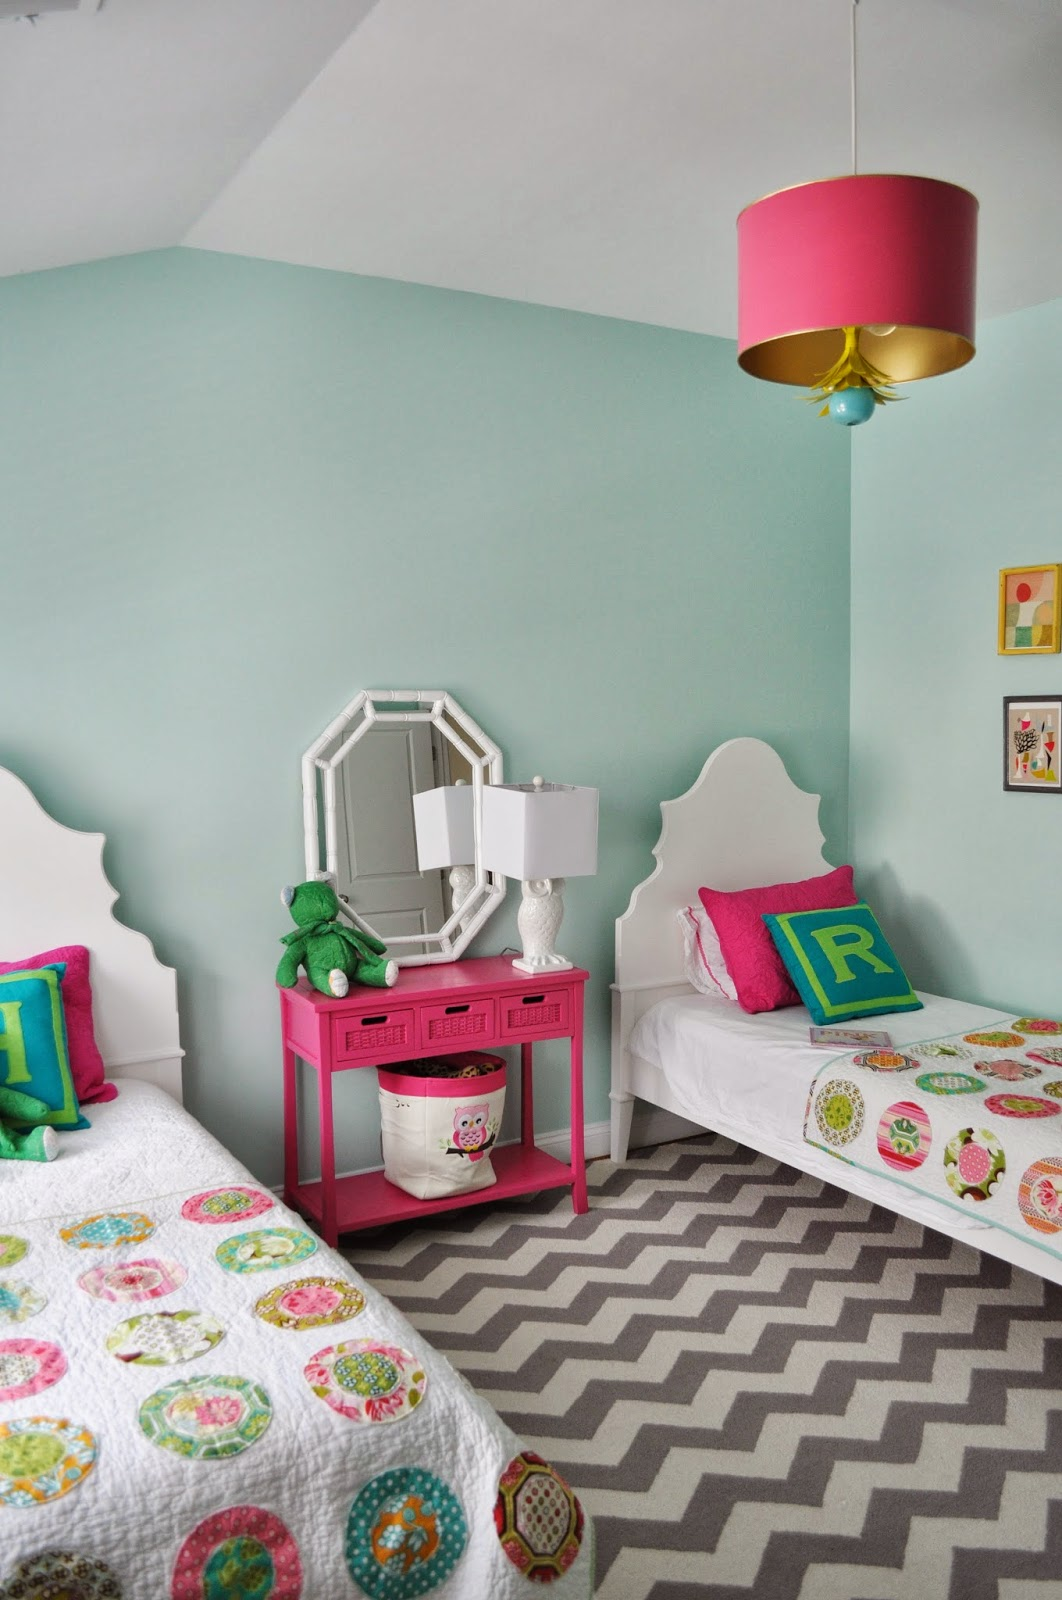 jws interiors project reveal twin girls eclectic bedroom project reveal twin girls eclectic bedroom